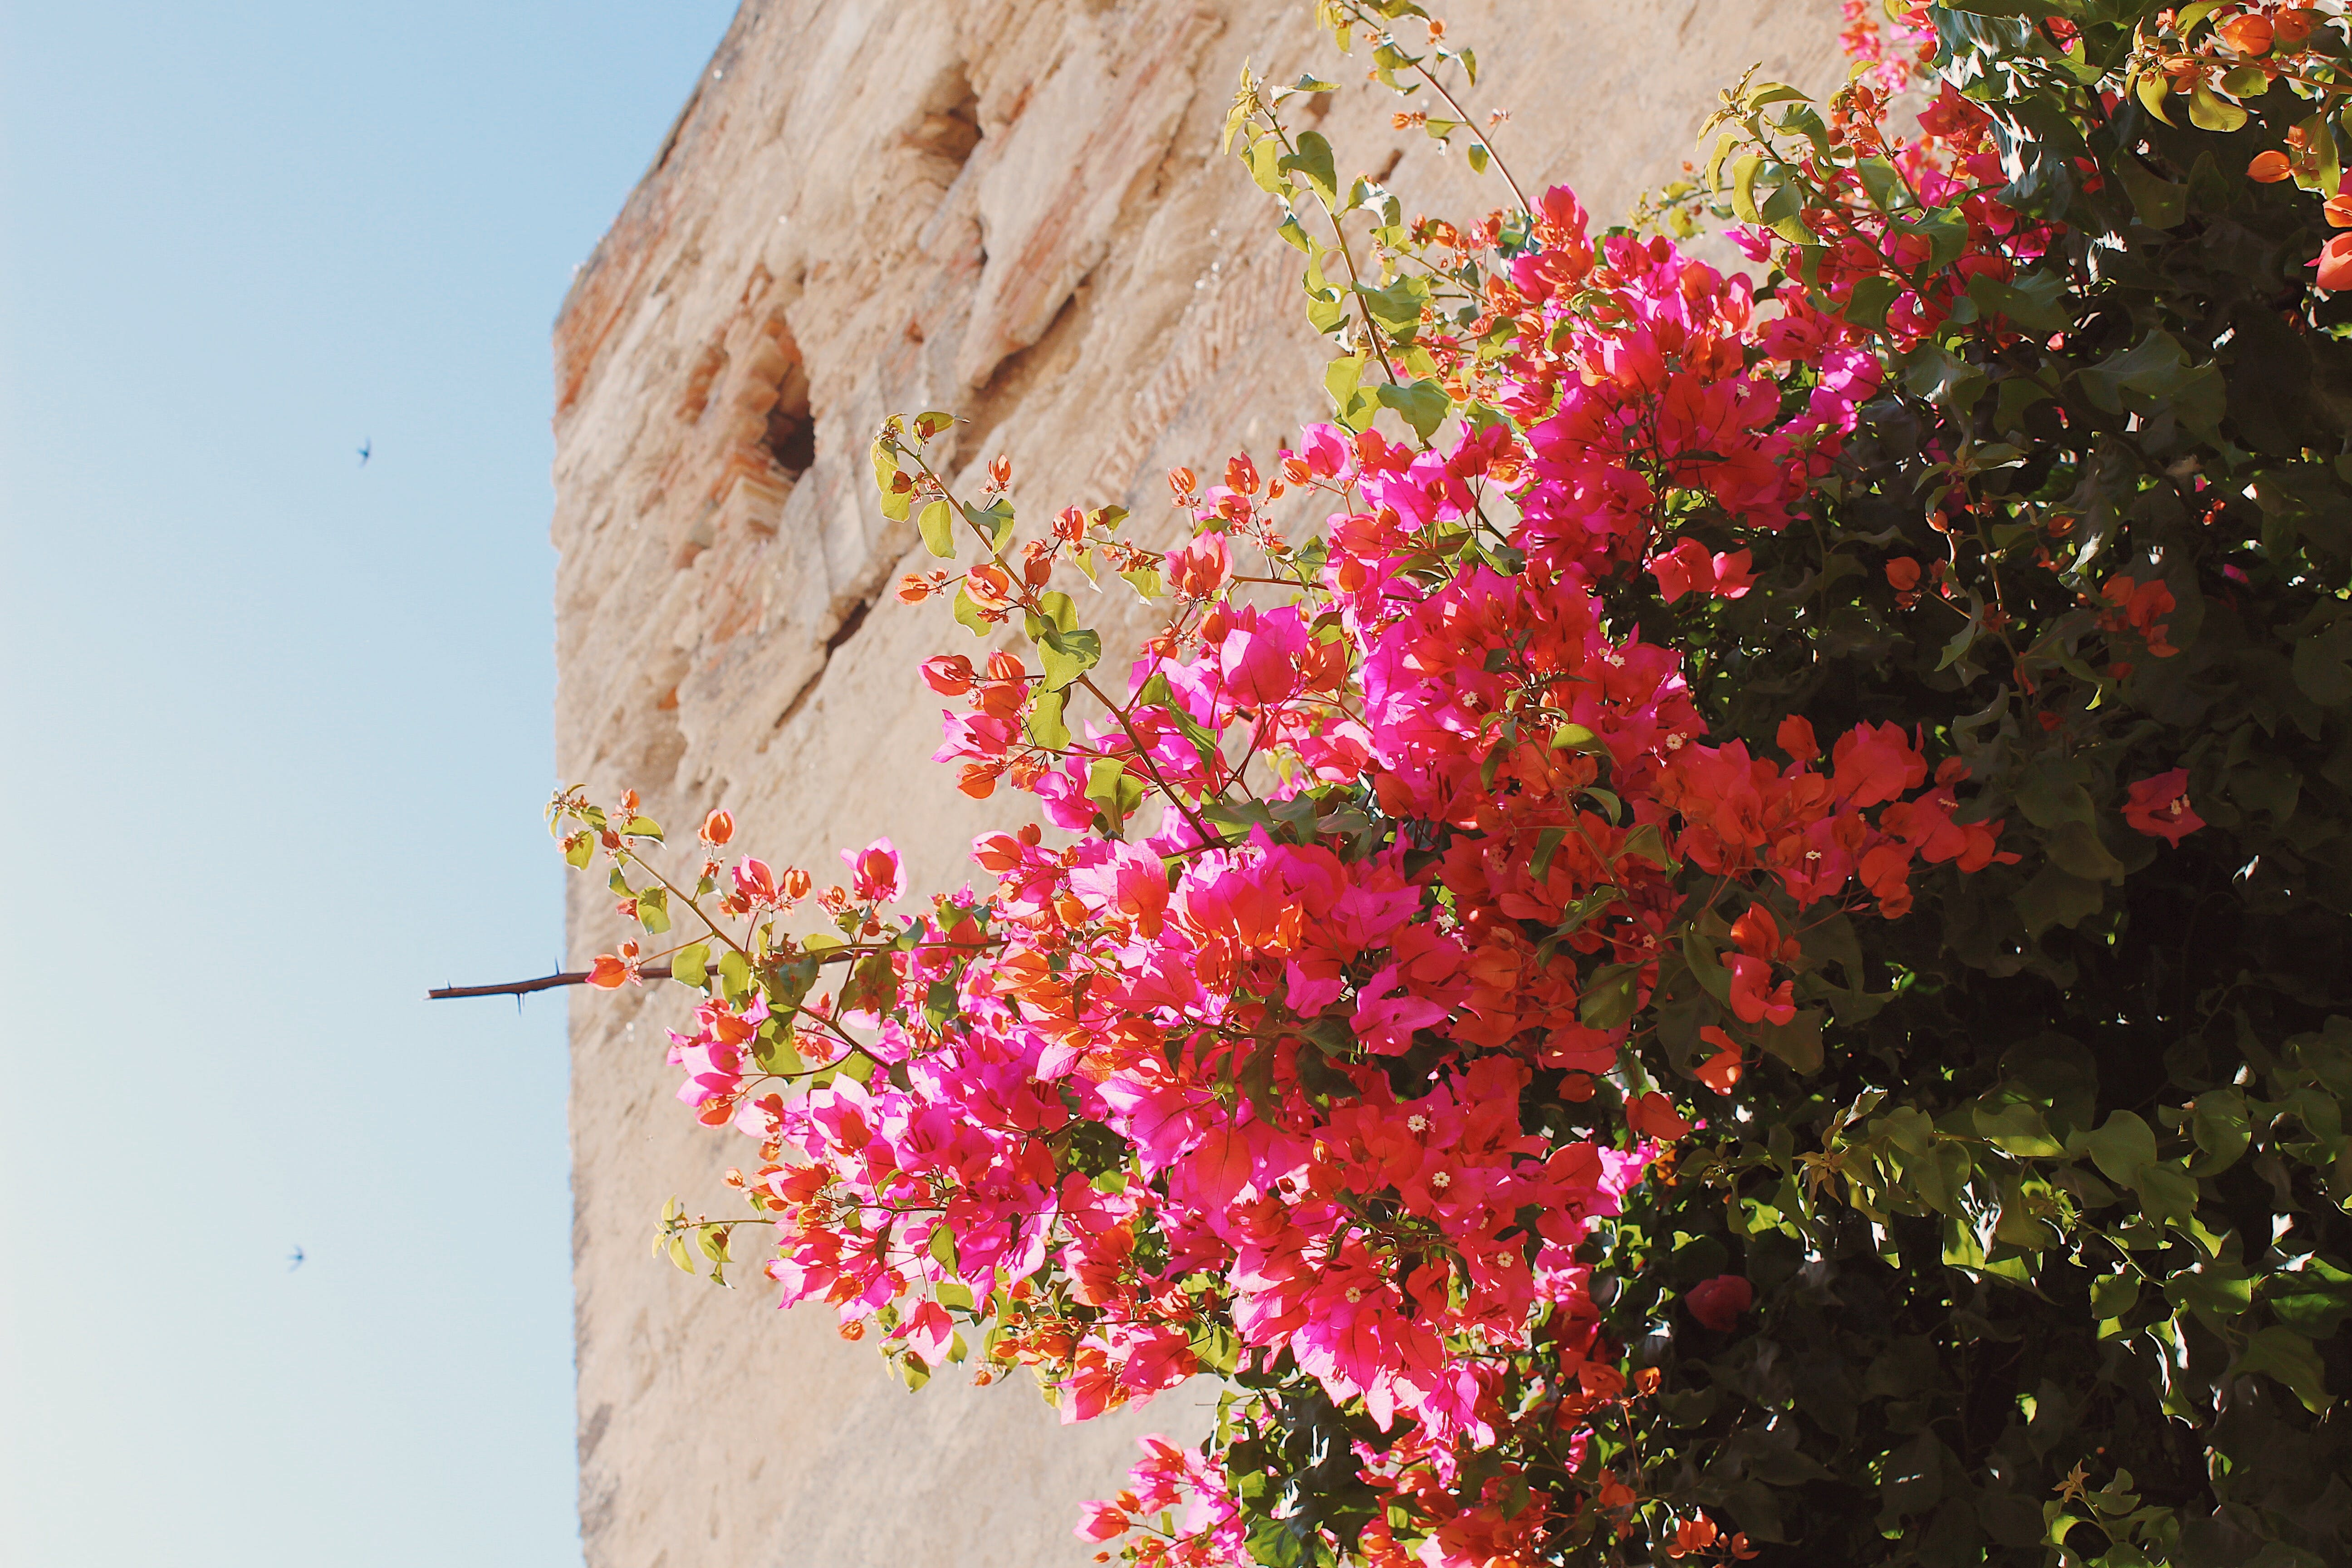 Pink Flowering Tree and Brown Concrete Building